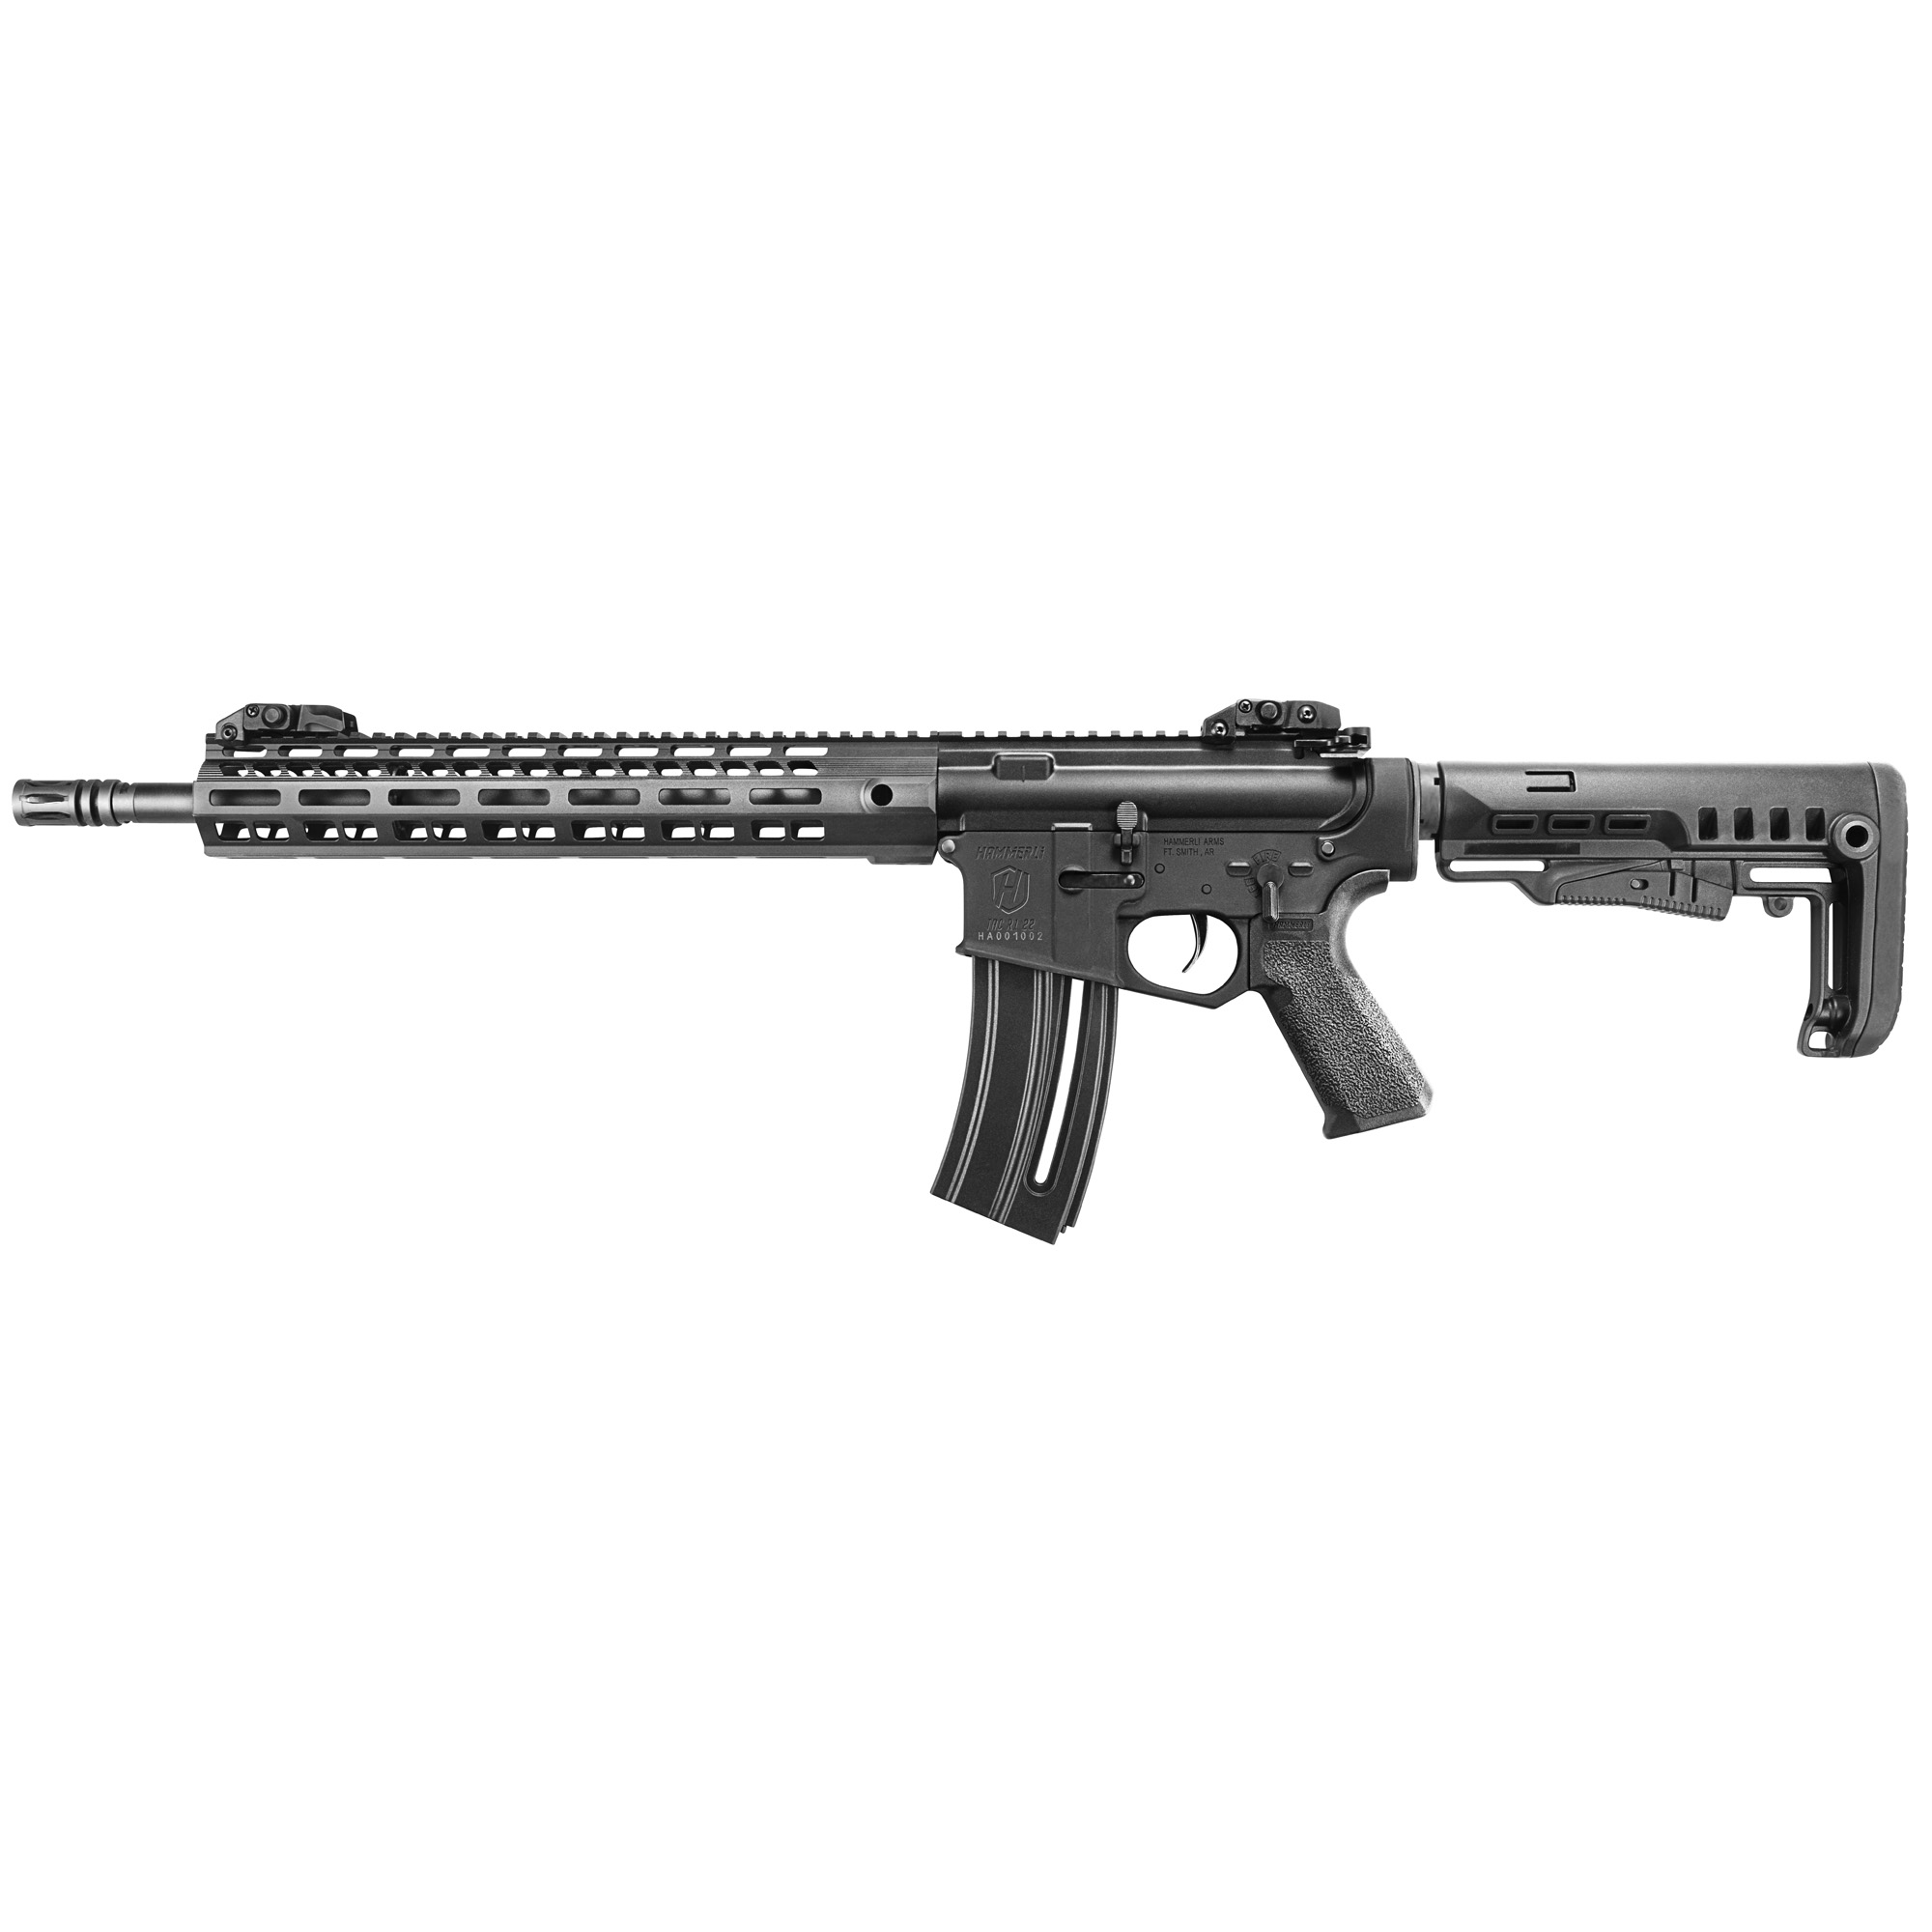 """The HAMMERLI TAC R1 22 rifle offers the best precision"""" quality"""" and value of any .22 L.R. AR-Style rifle on the market. Featuring a 13"""" M-LOK(R) handguard"""" flip up back-up sights"""" removable flash-hider"""" and ergonomic stock & grip"""" the TAC R1 22 rifle is the most versatile .22 rifle available. All of these features"""" in addition to the all-aluminum construction of it's receivers and handguard"""" set a new standard for performance and value."""